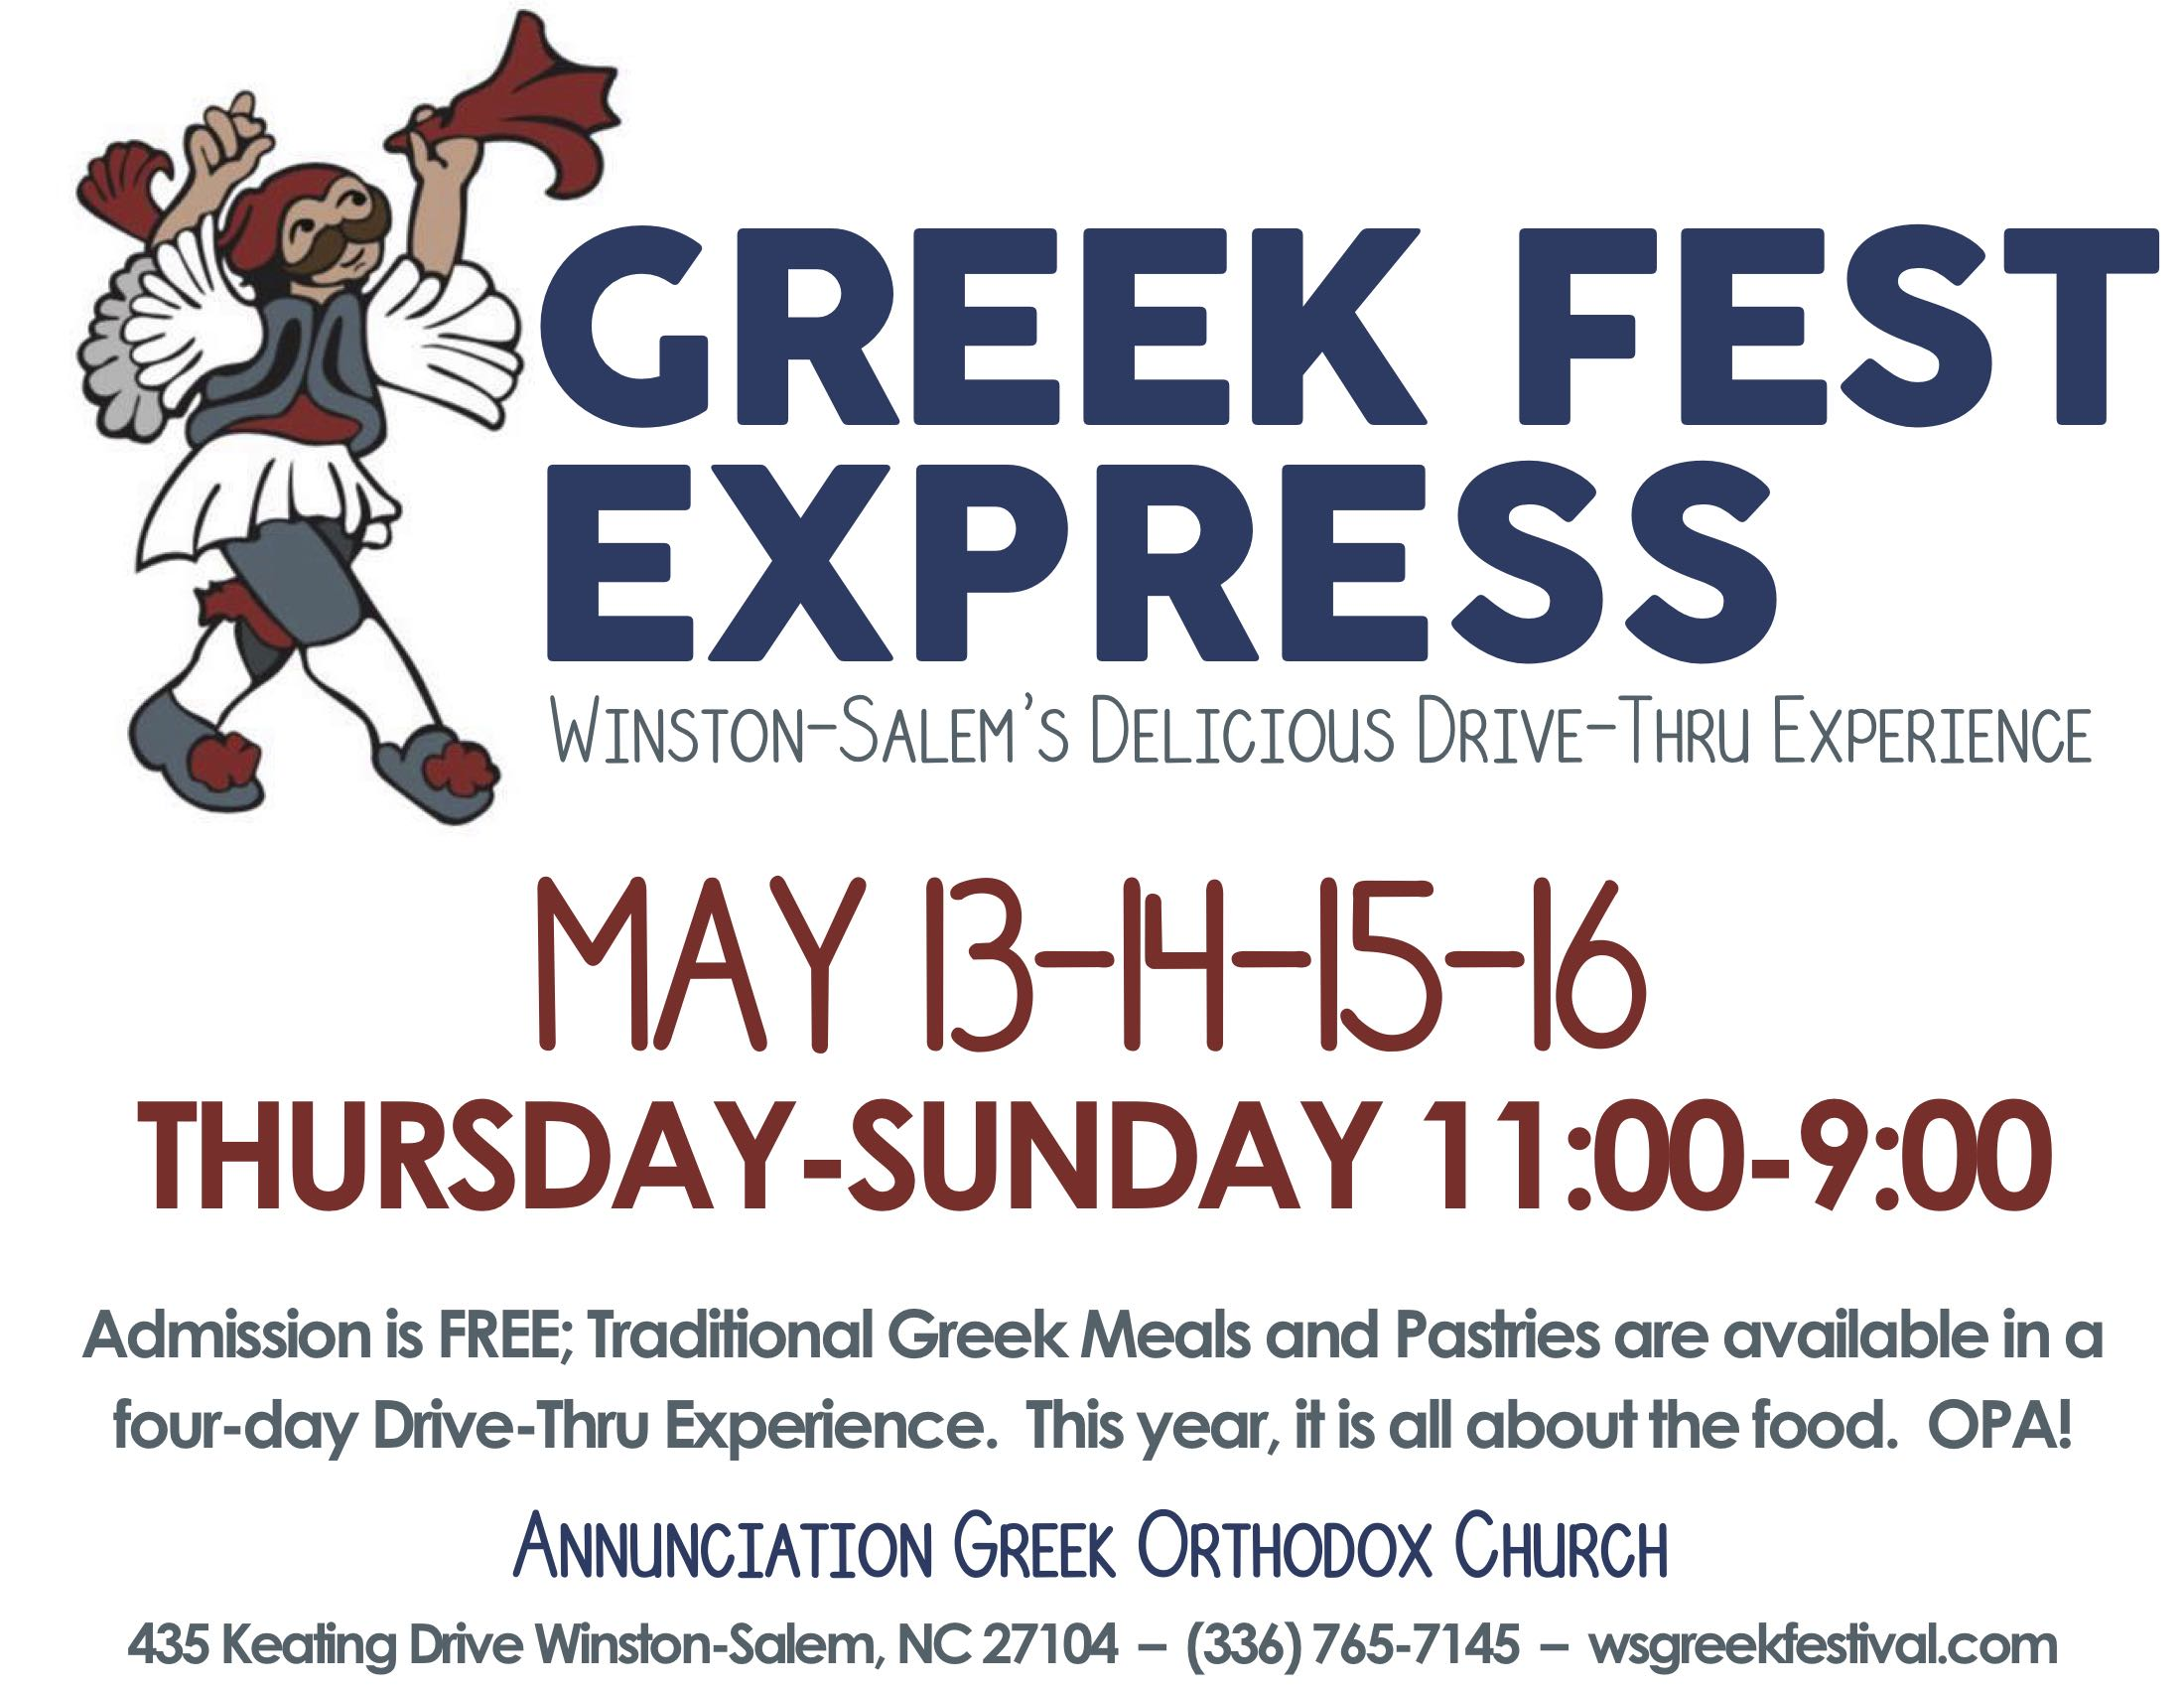 Greek Fest Express May